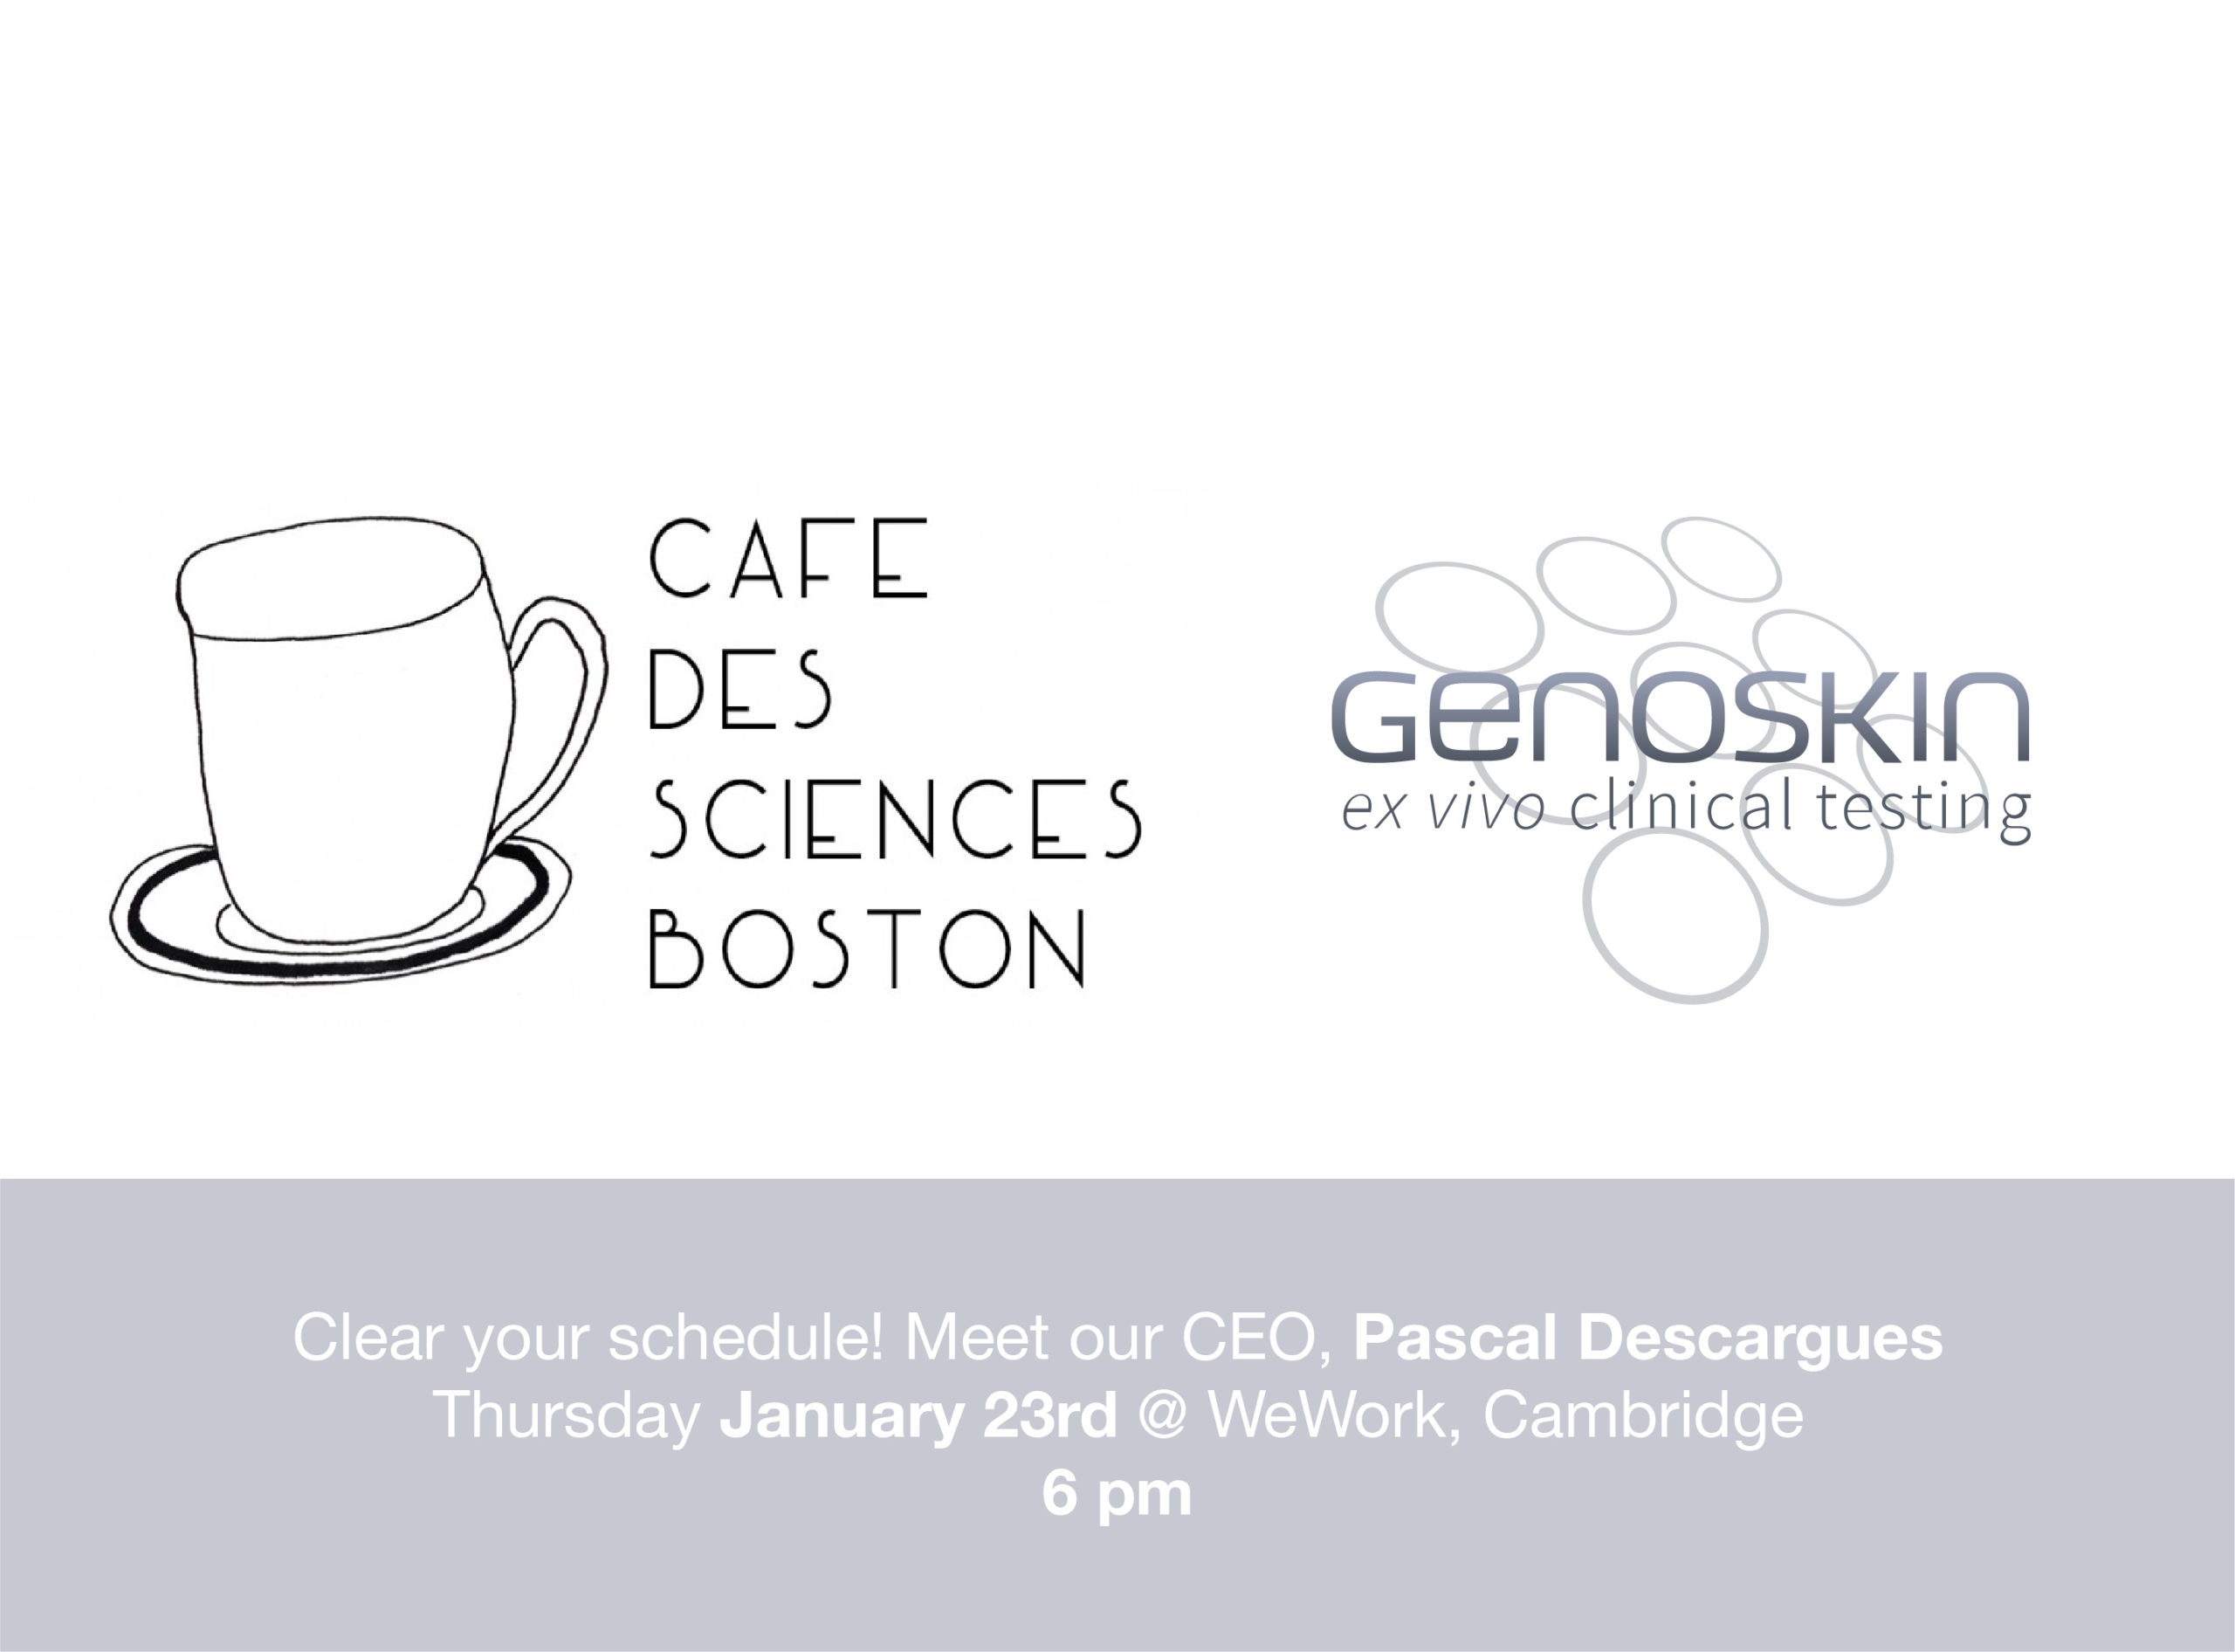 Café des Sciences Boston logo and Genoskin logo